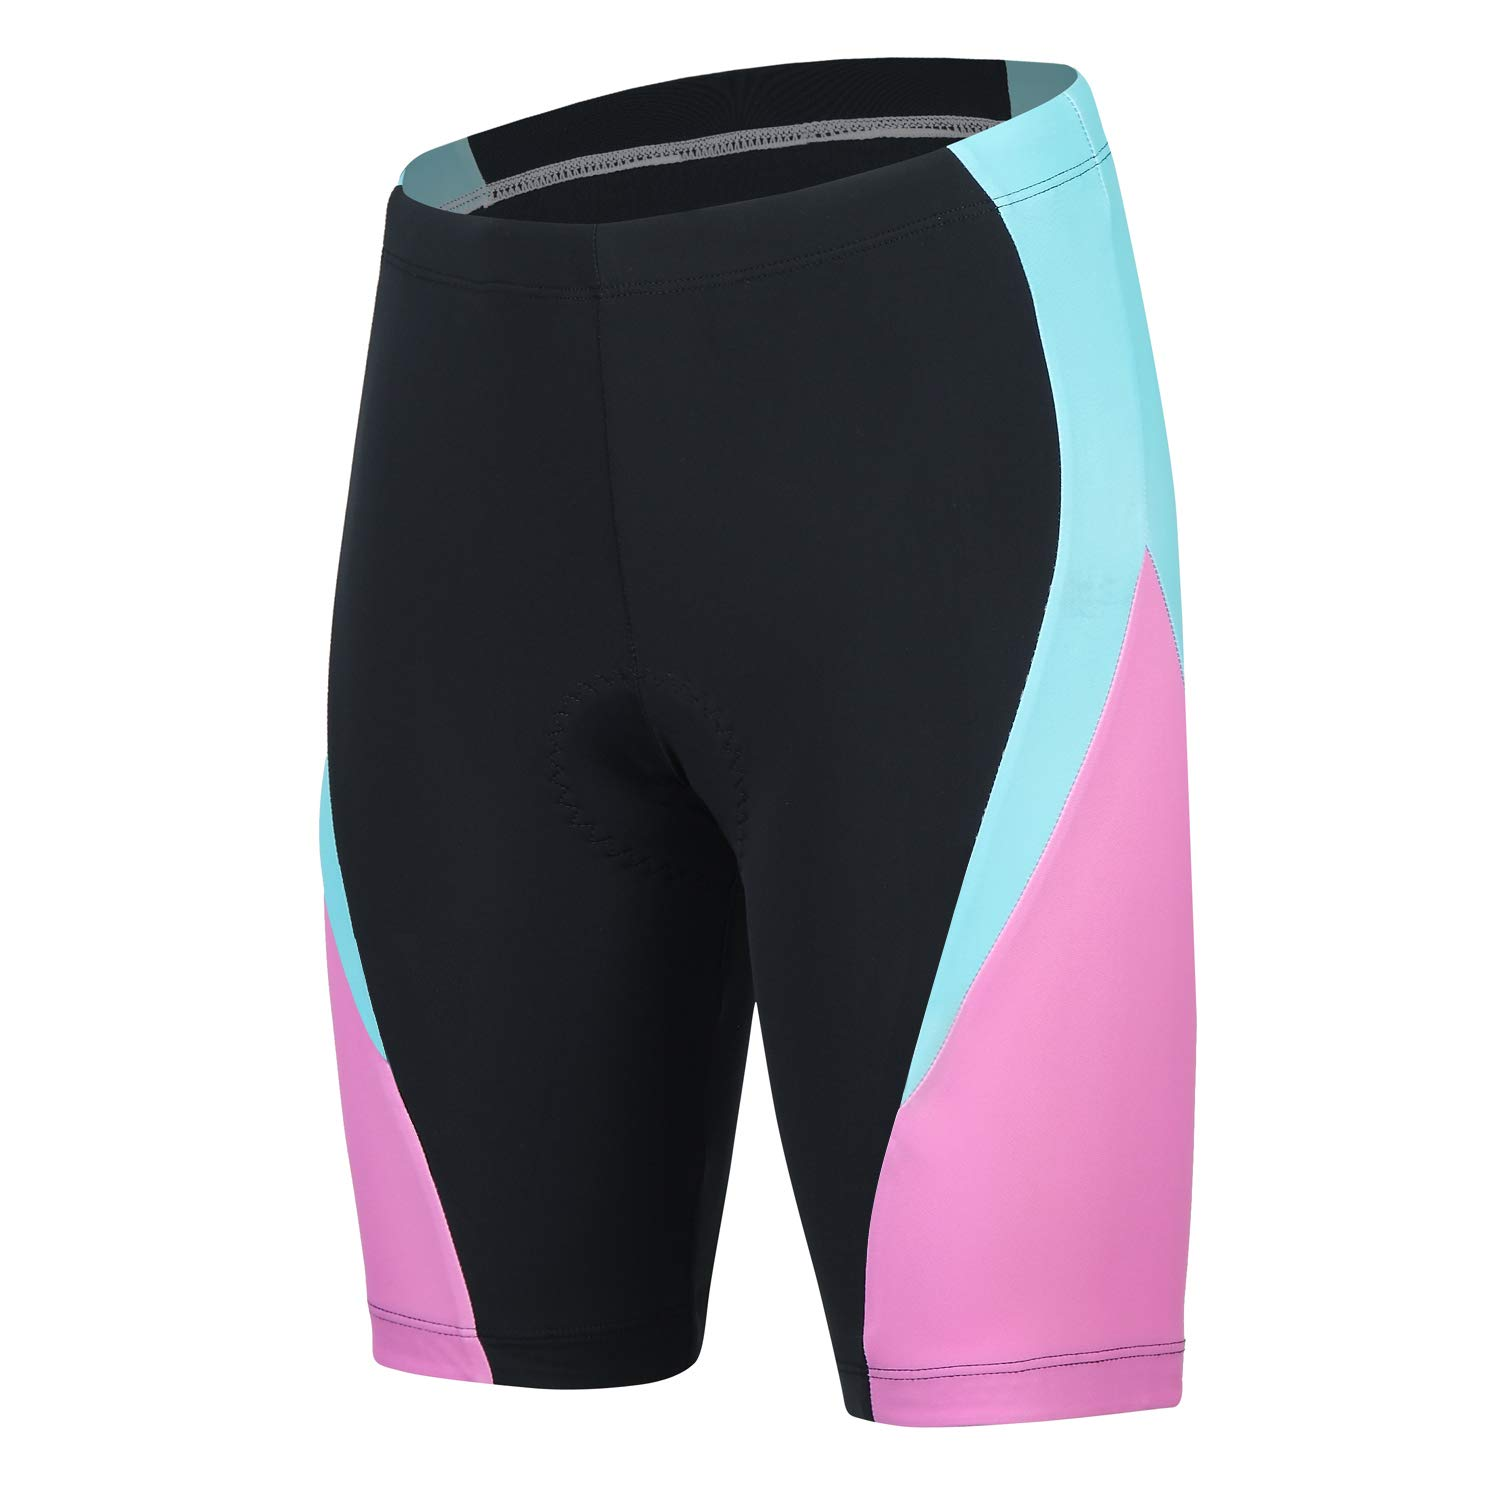 beroy Padded Bike Shorts Women,Ladies Compression Shorts,Bicycle Shorts(M Pink) by beroy